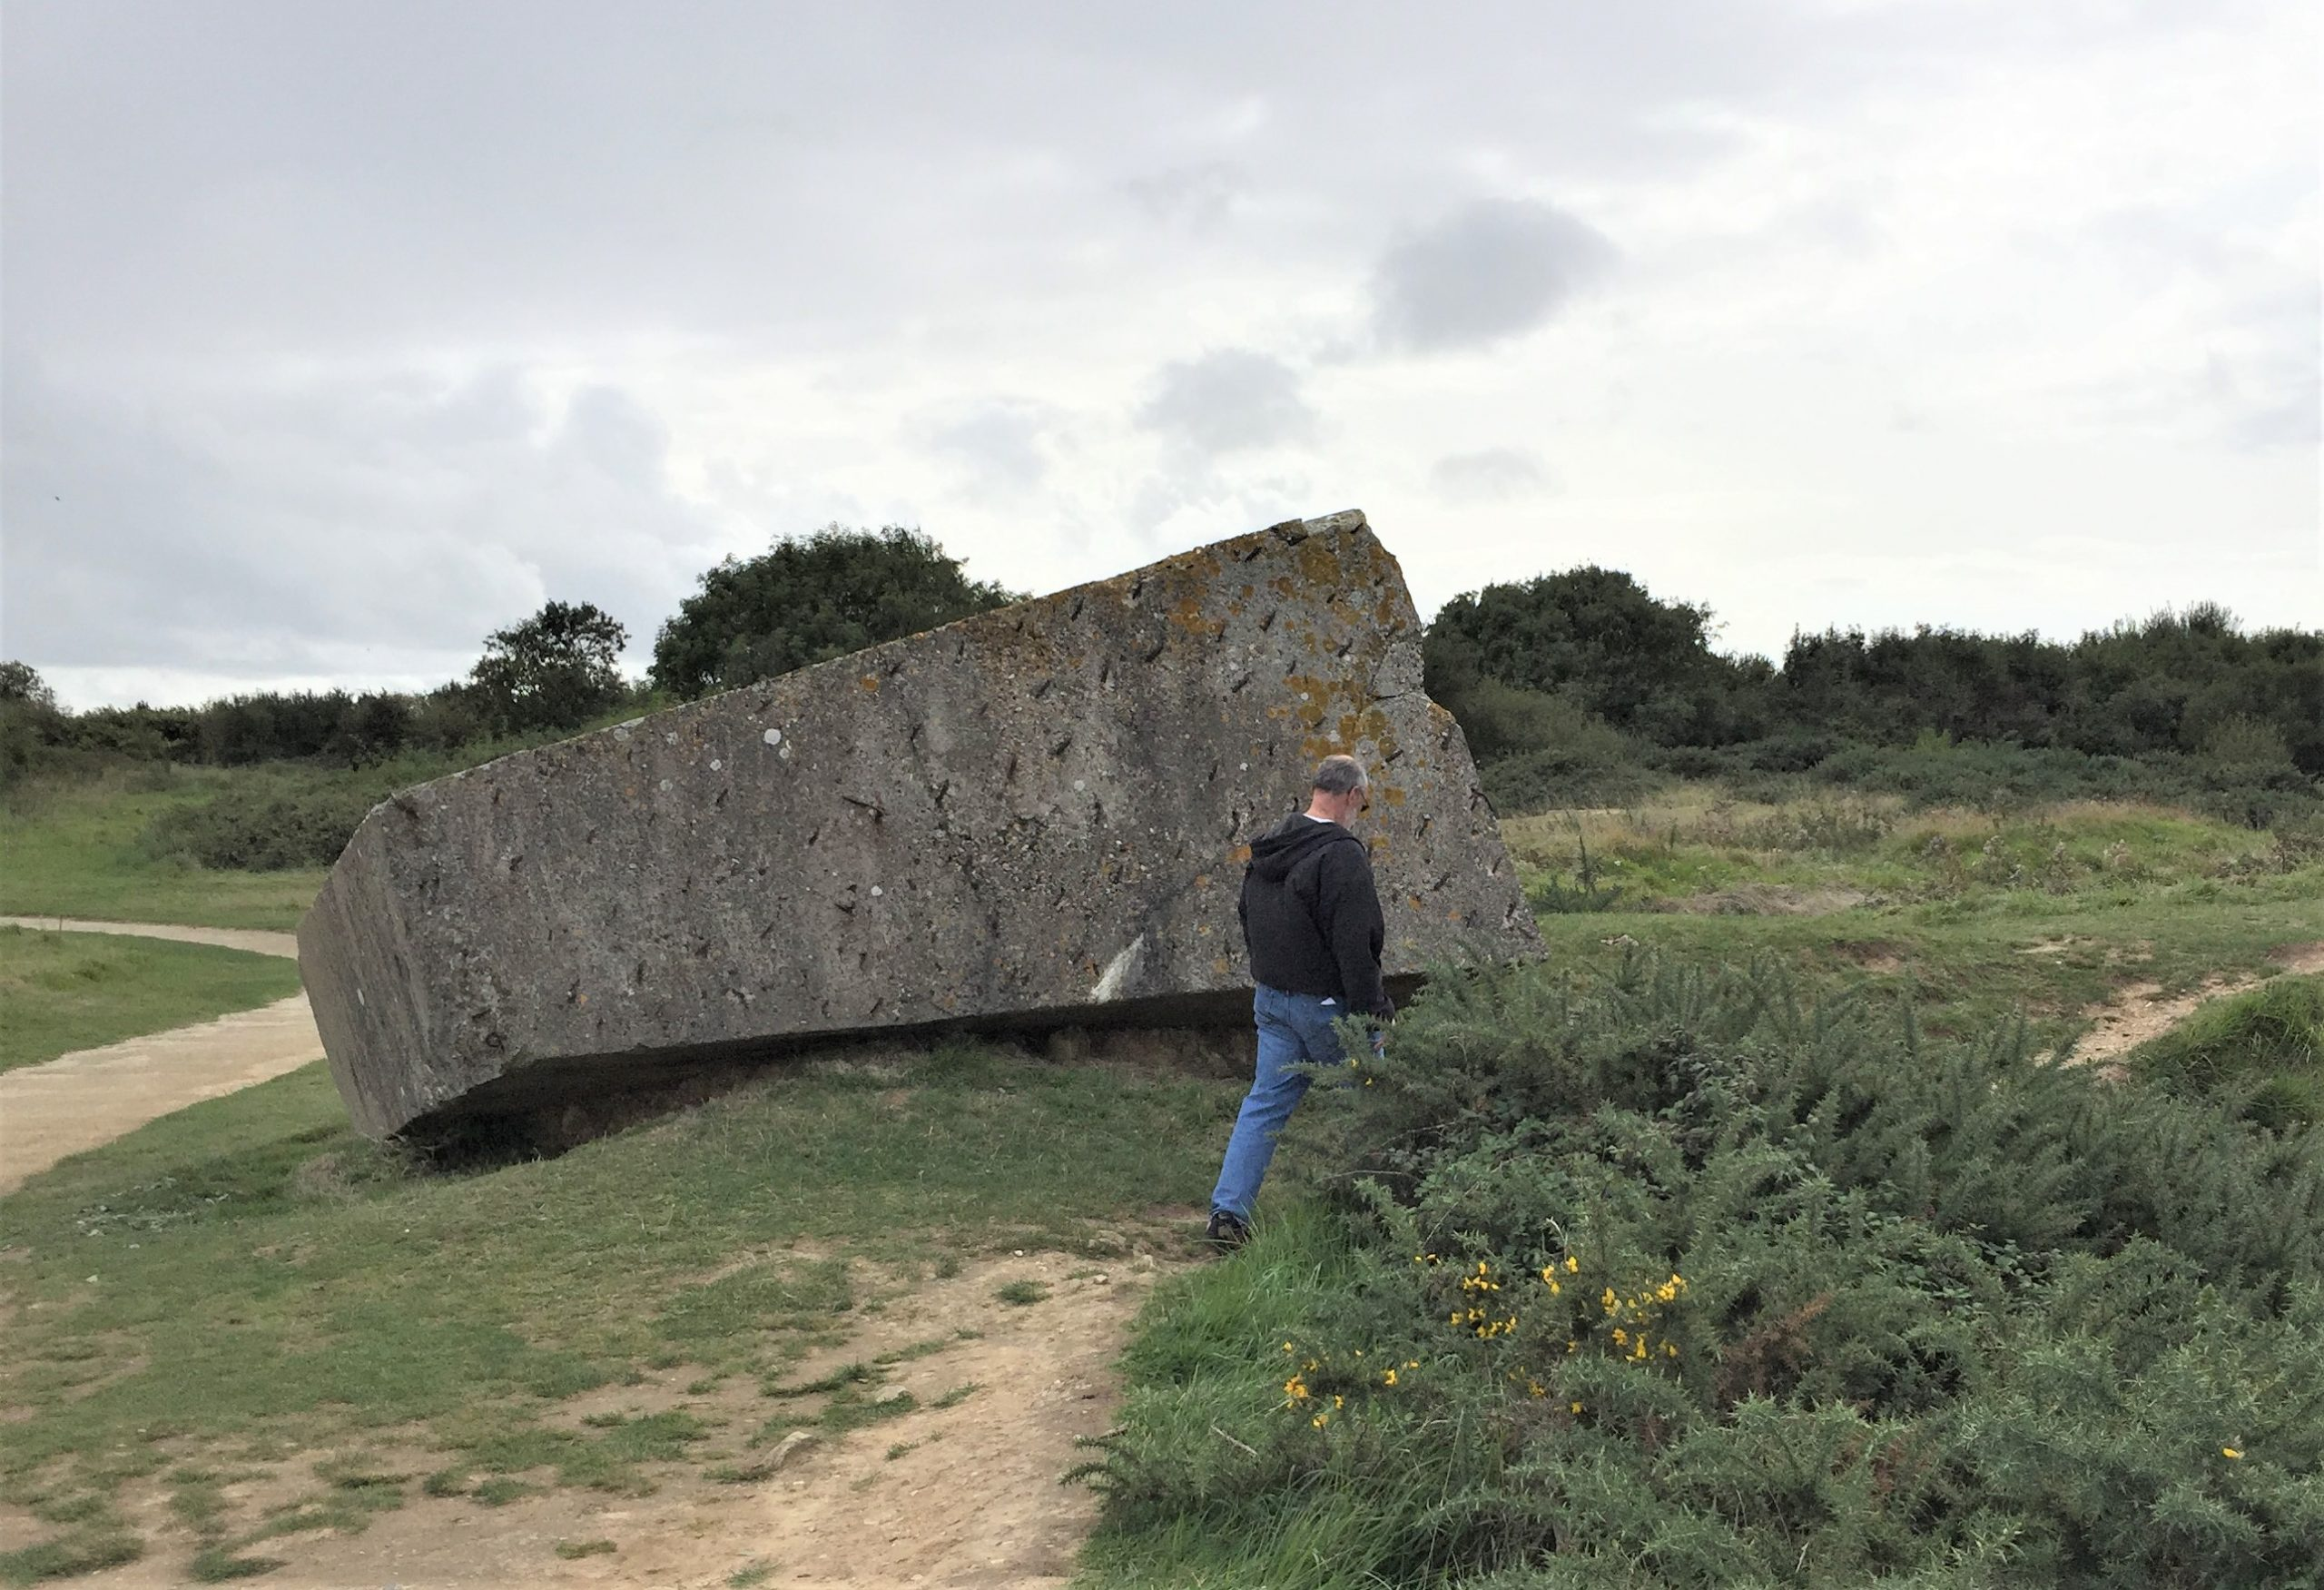 Ruins at Pointe du Hoc (Photo: Sarah Sundin, September 2017)